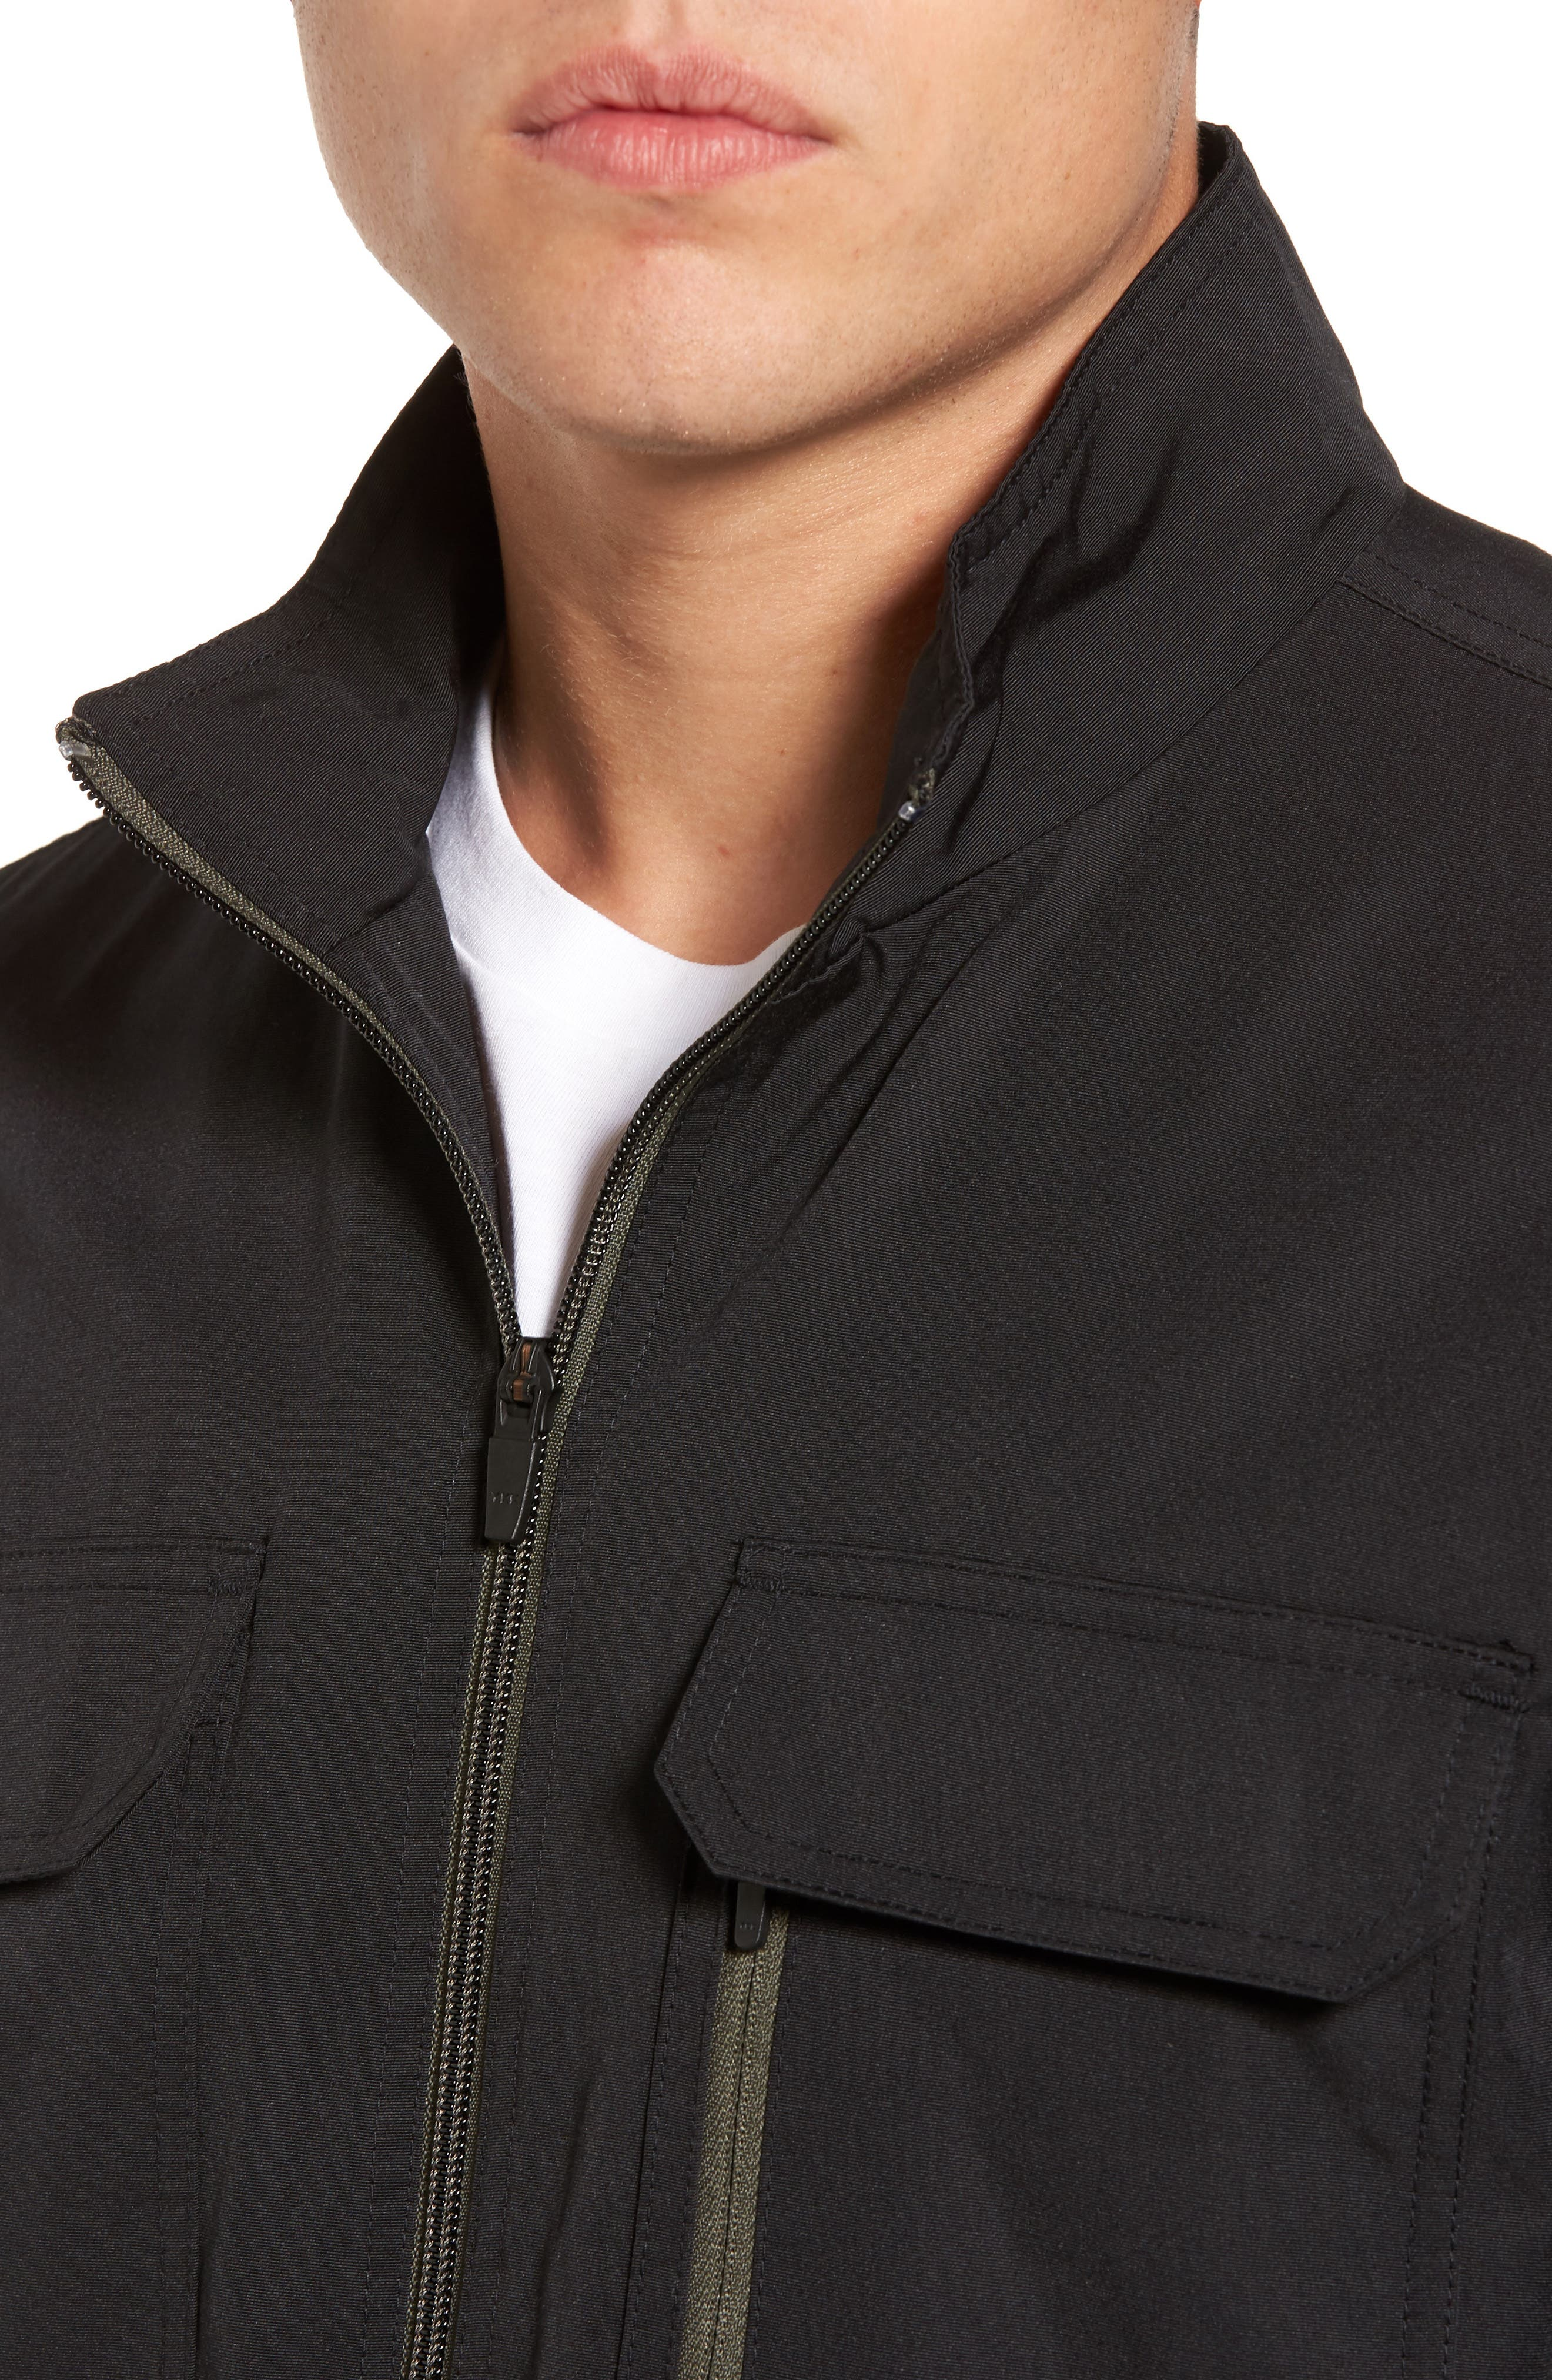 Staple Jacket,                             Alternate thumbnail 4, color,                             Solid Black